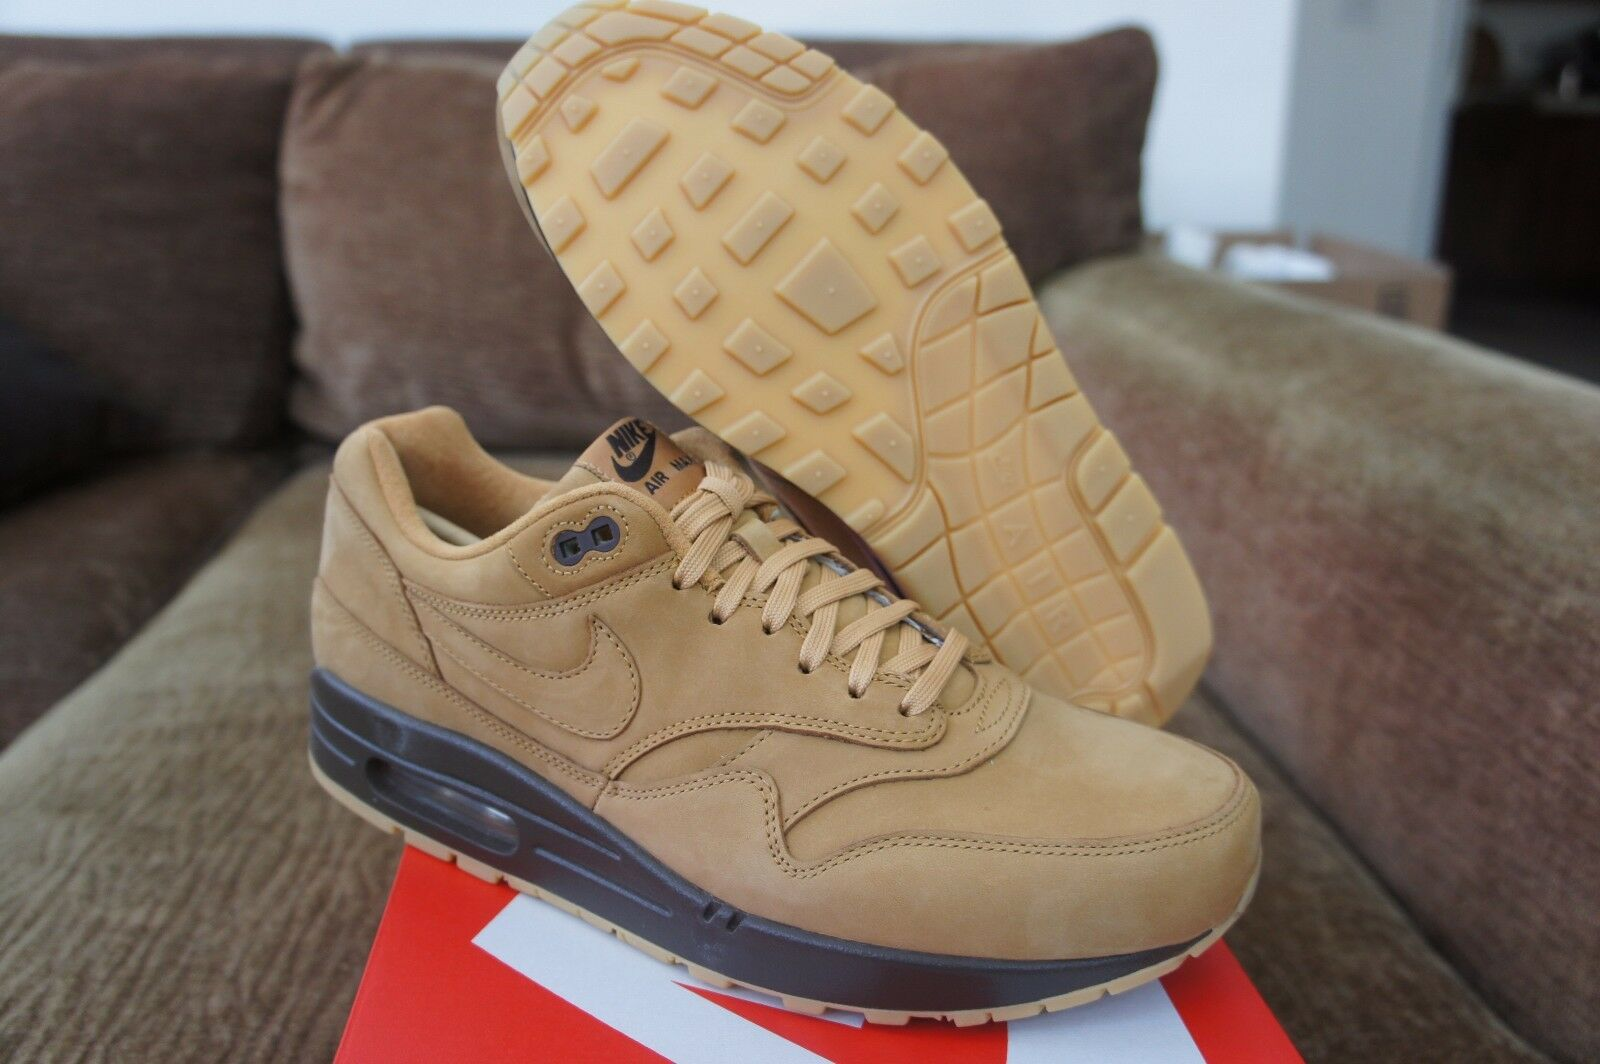 Nike air max 1 braune premium - weizen flachs barock braune 1 pack collection fcc543